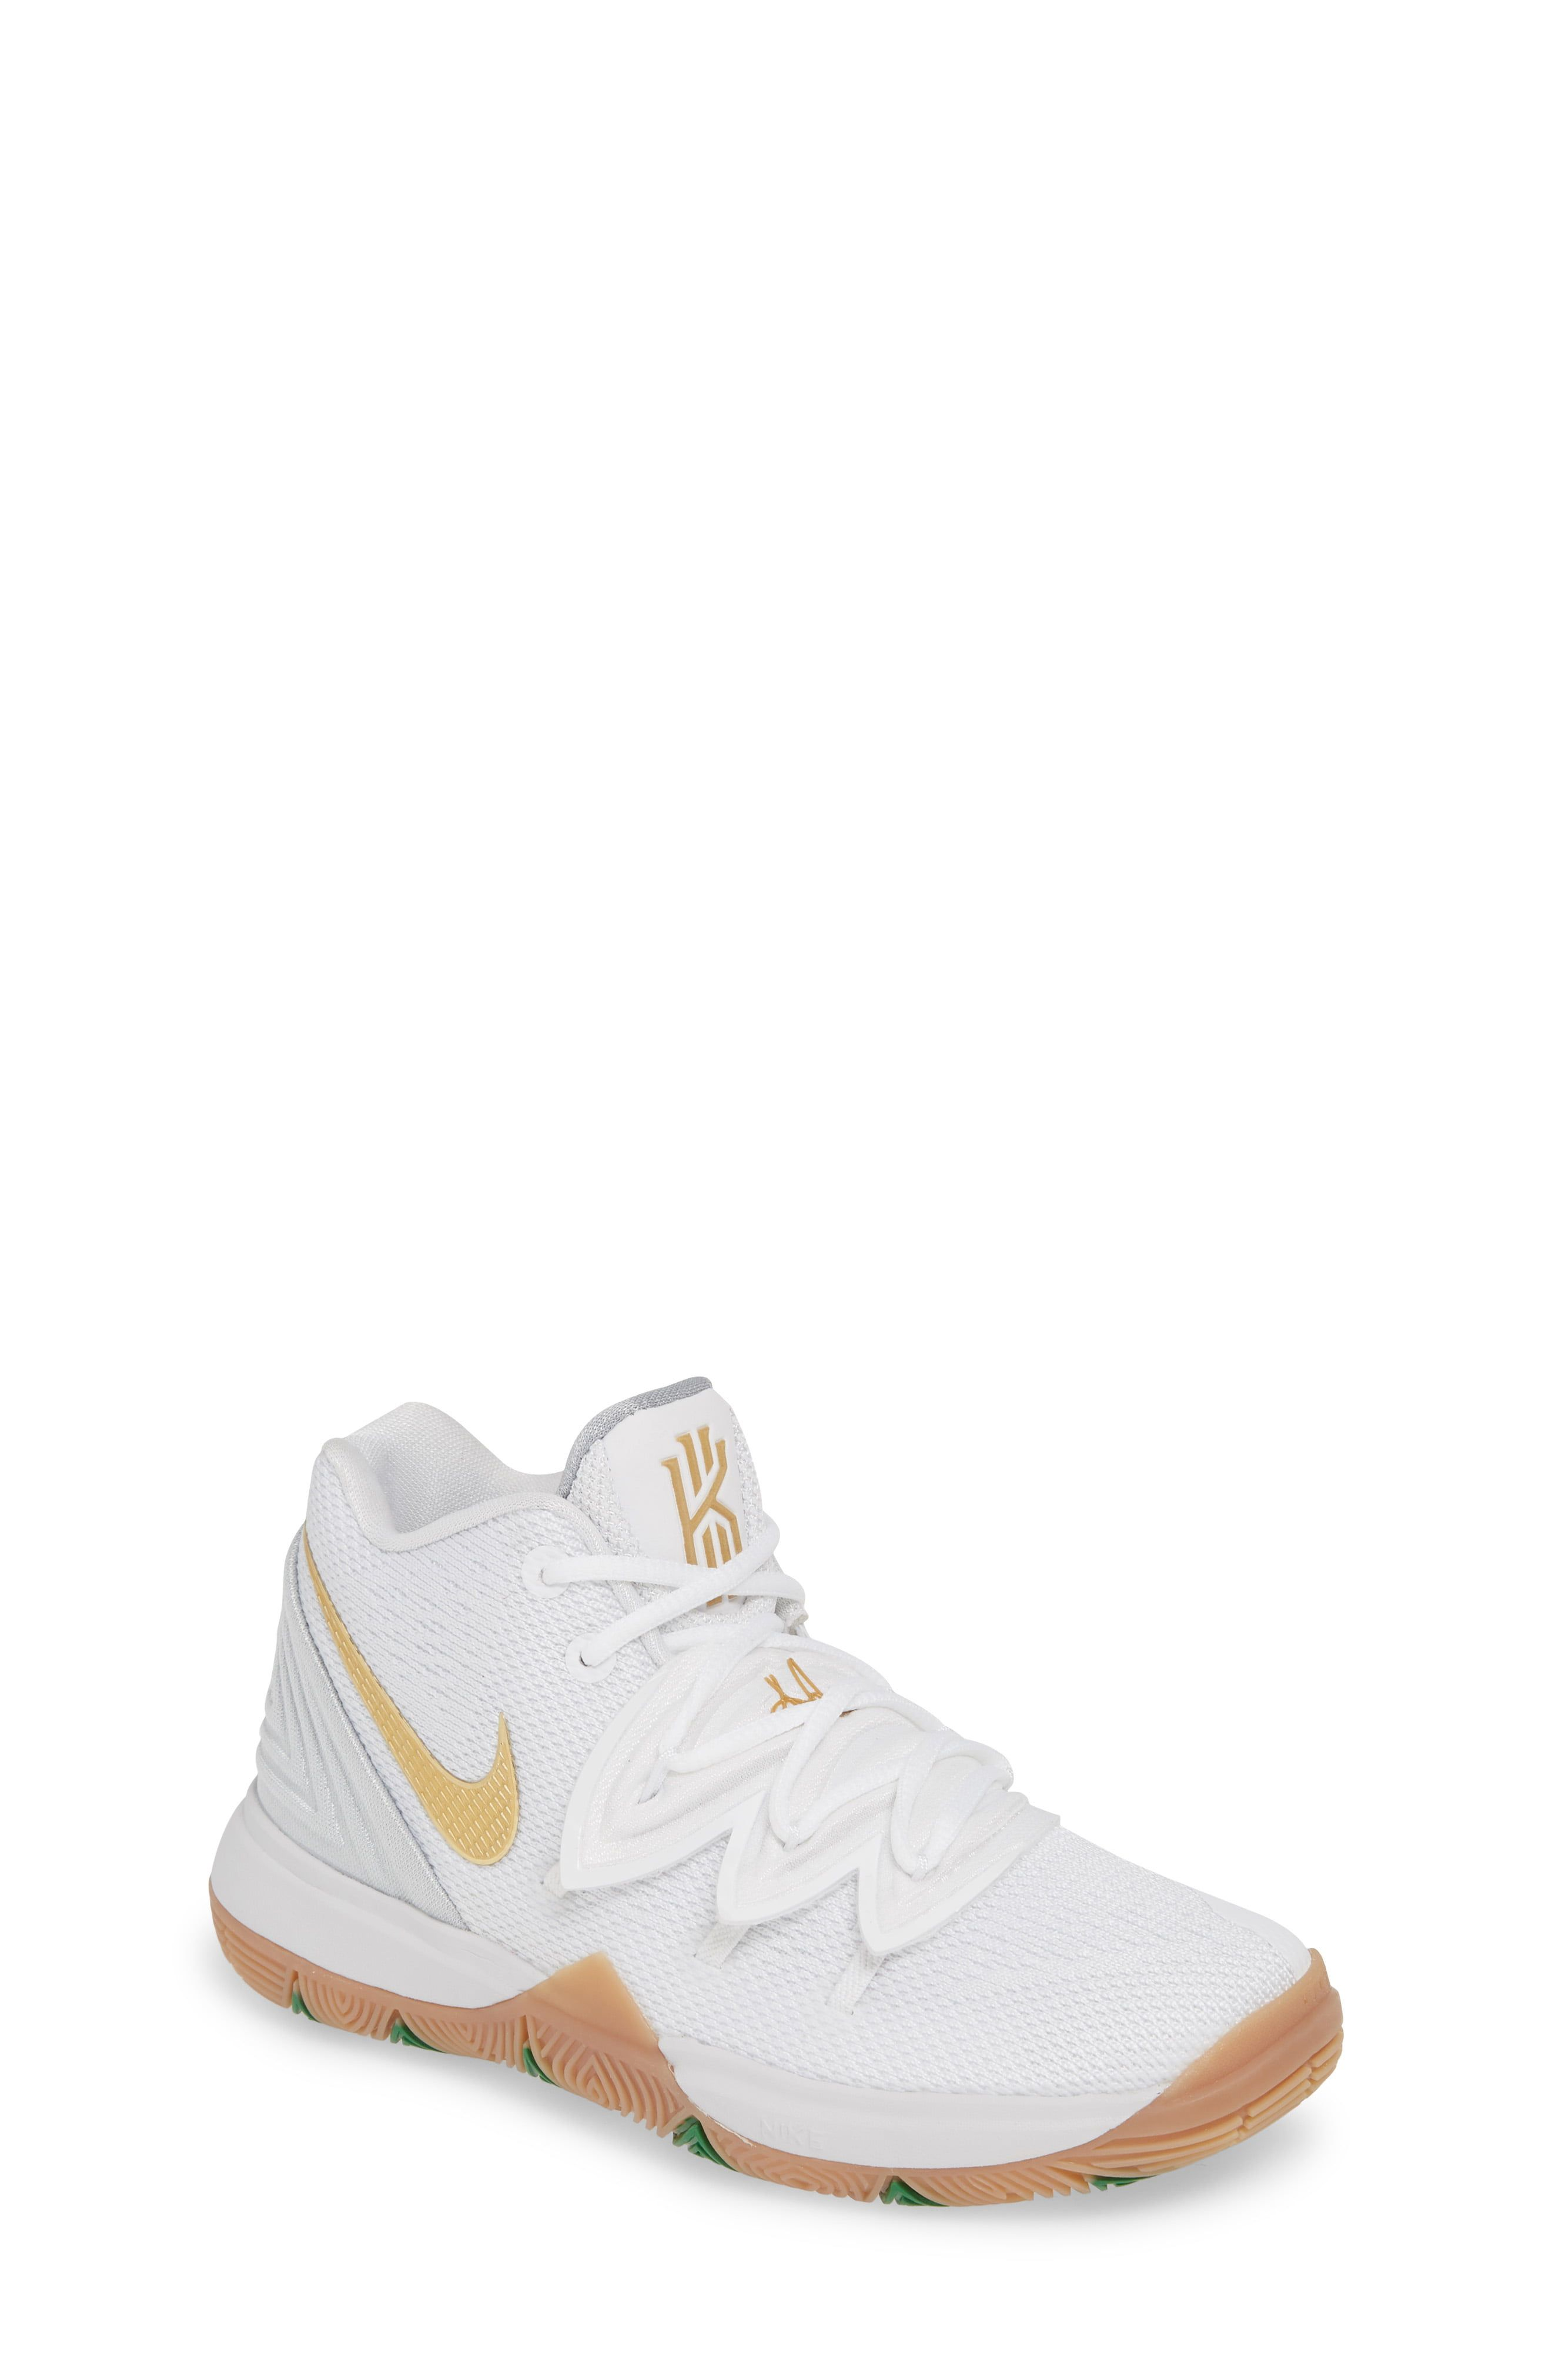 Toddler Nike Kyrie 5 Basketball Shoe Size 10 M White Girls Basketball Shoes Nike Kyrie Rieker Shoes